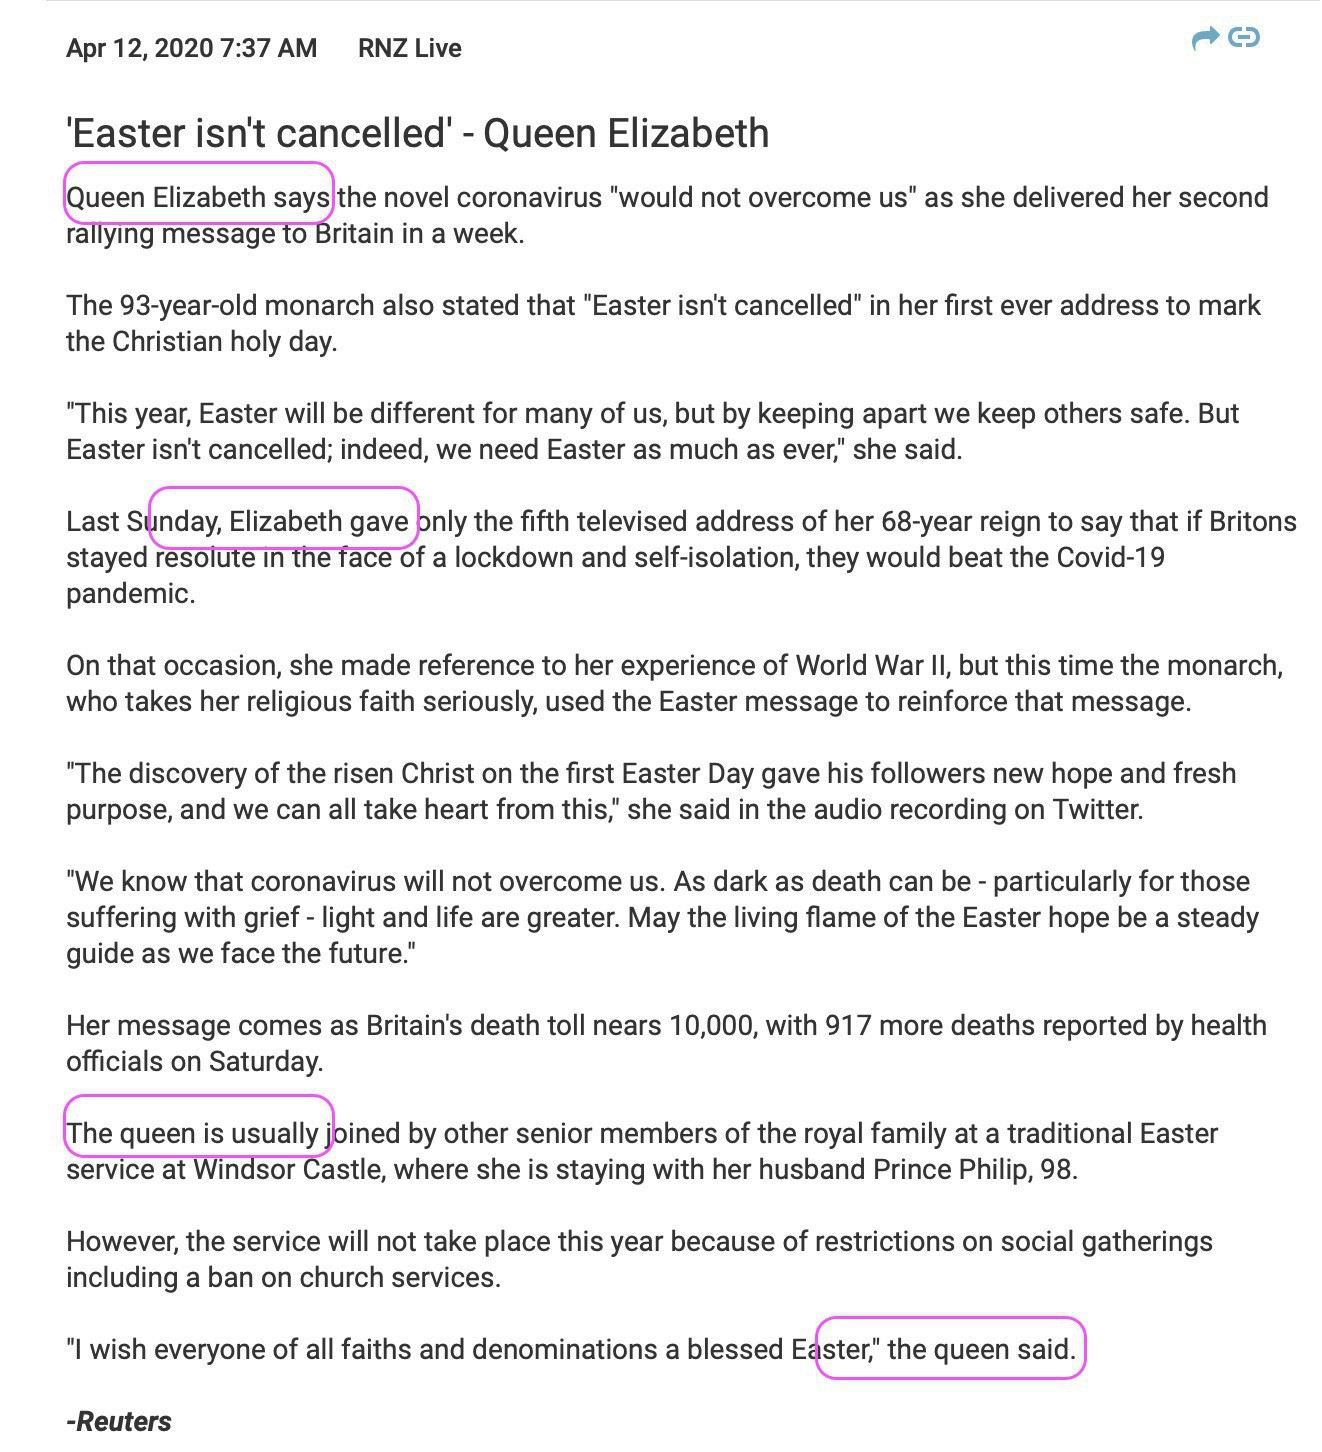 Screenshot of news item about Queen Elizabeth.